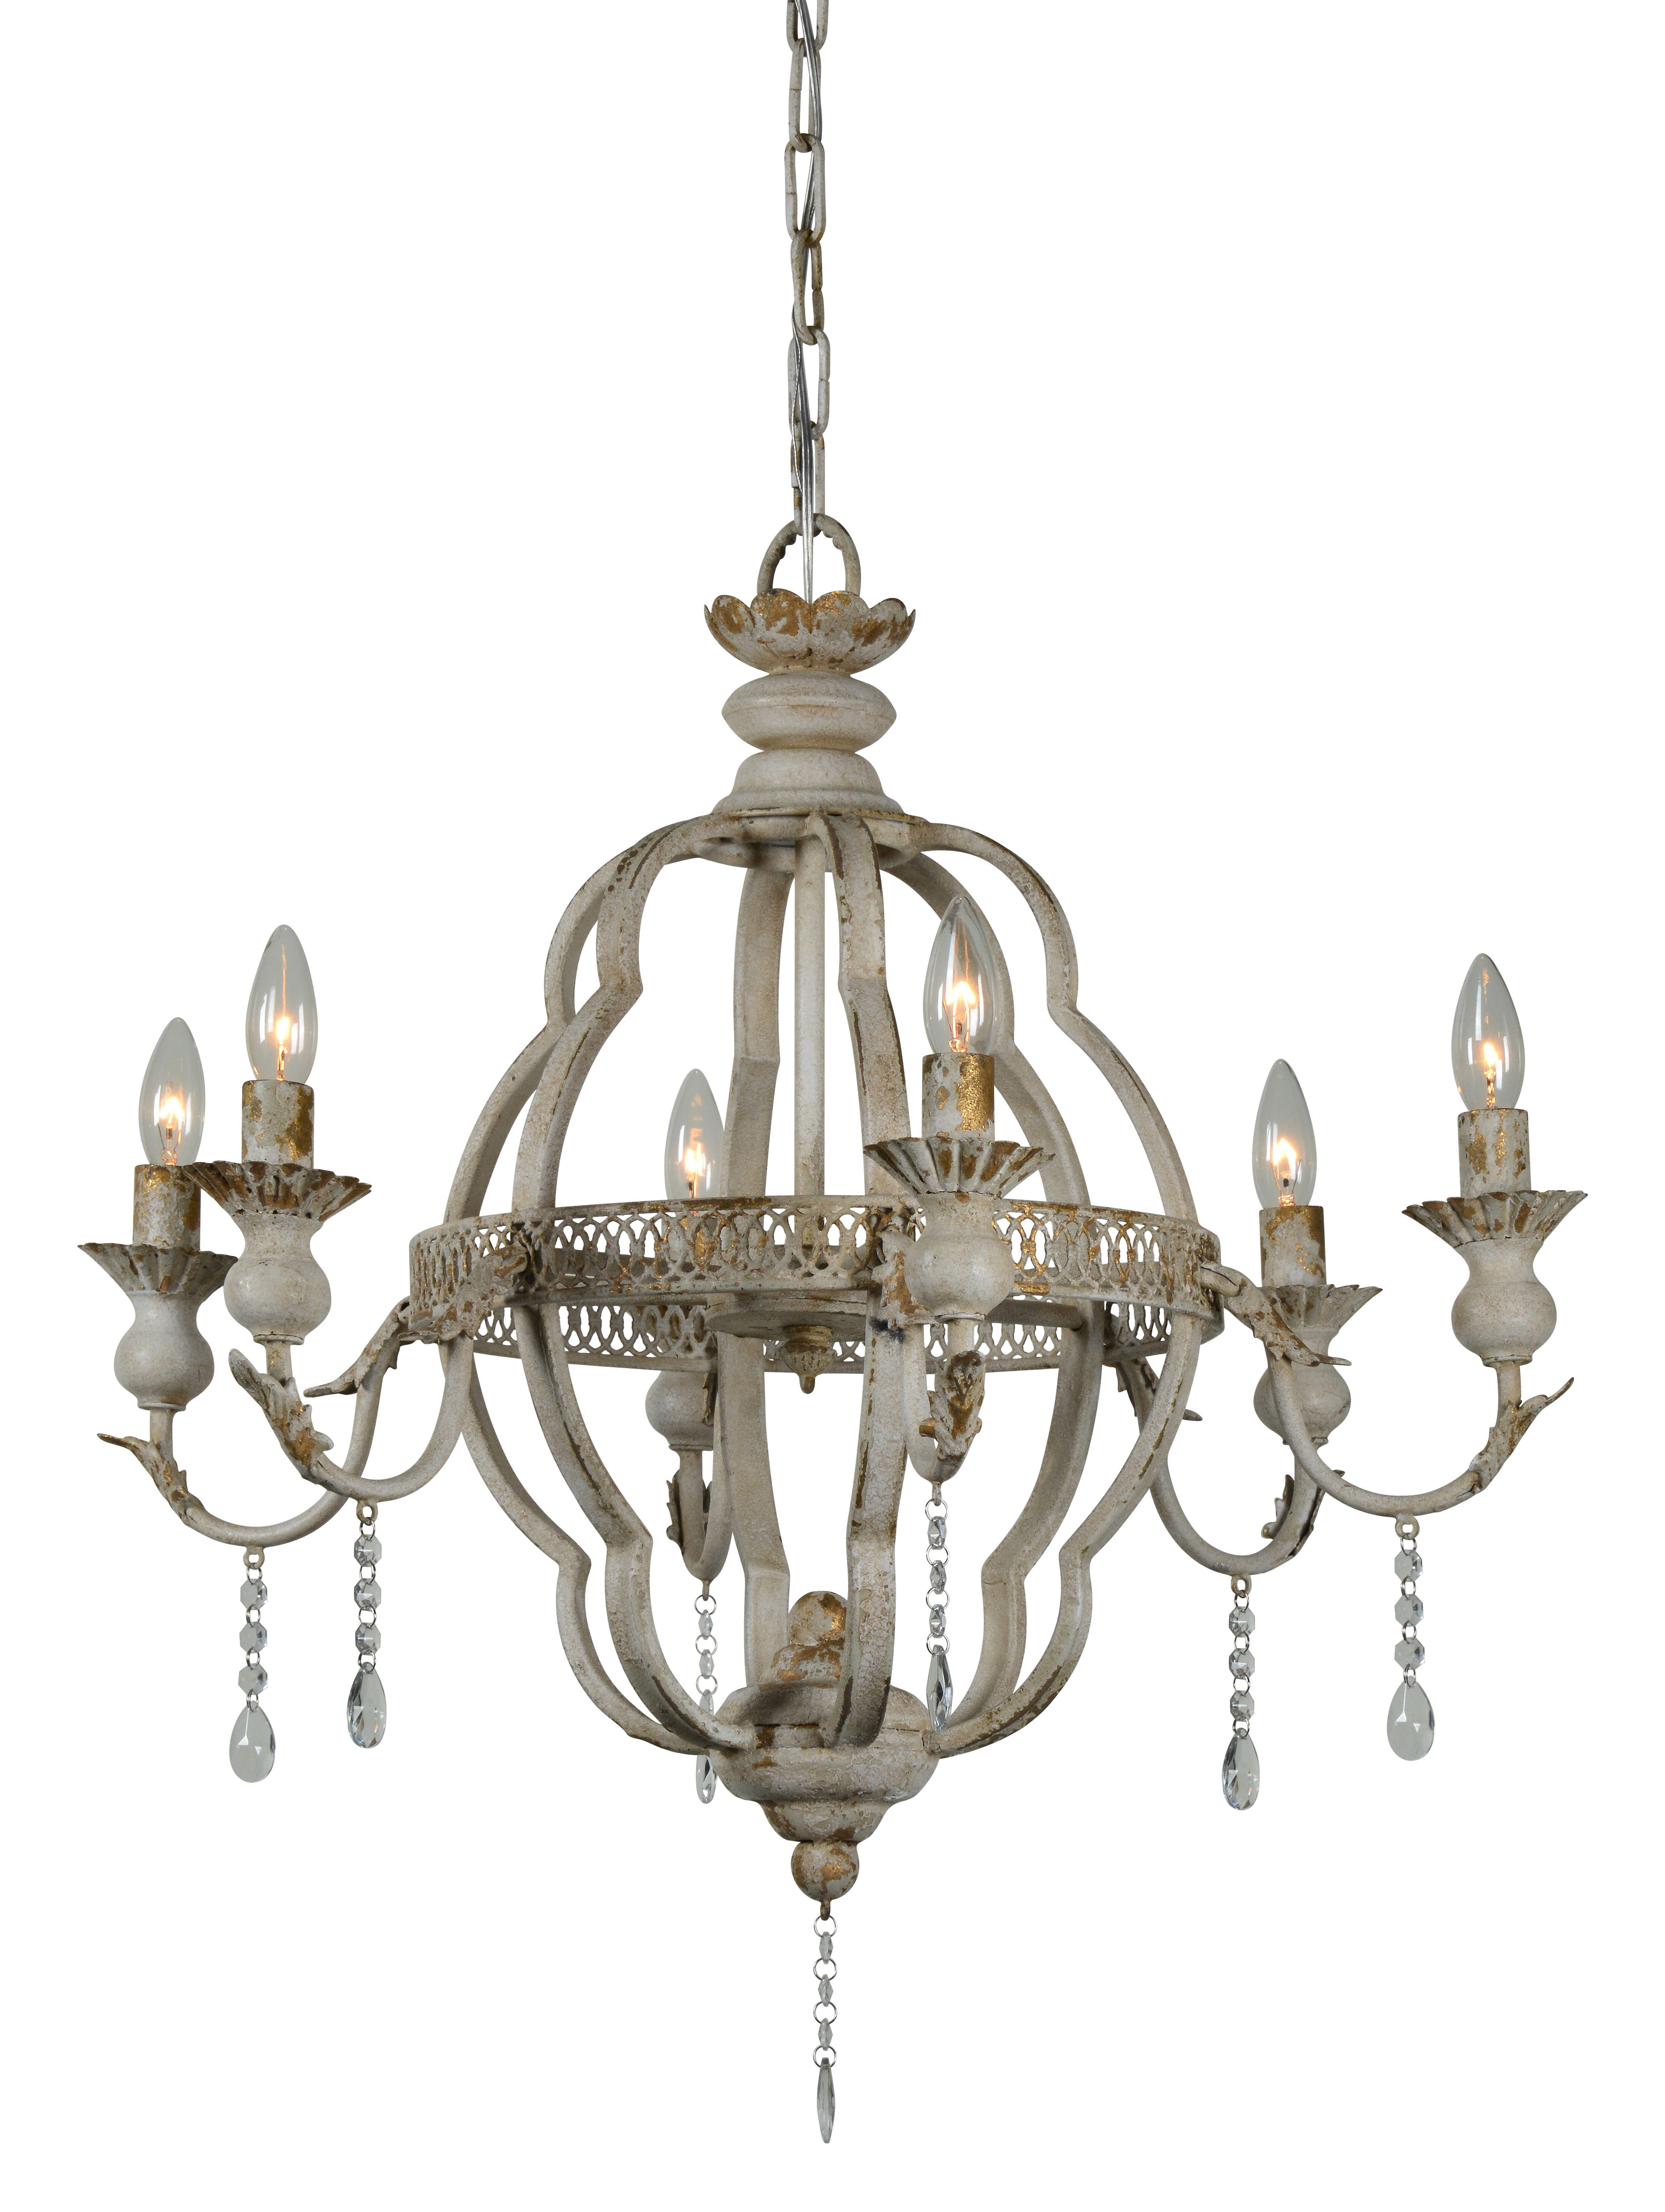 Best And Newest Lisa 6 Light Candle Style Chandelier Throughout Shaylee 6 Light Candle Style Chandeliers (View 2 of 25)